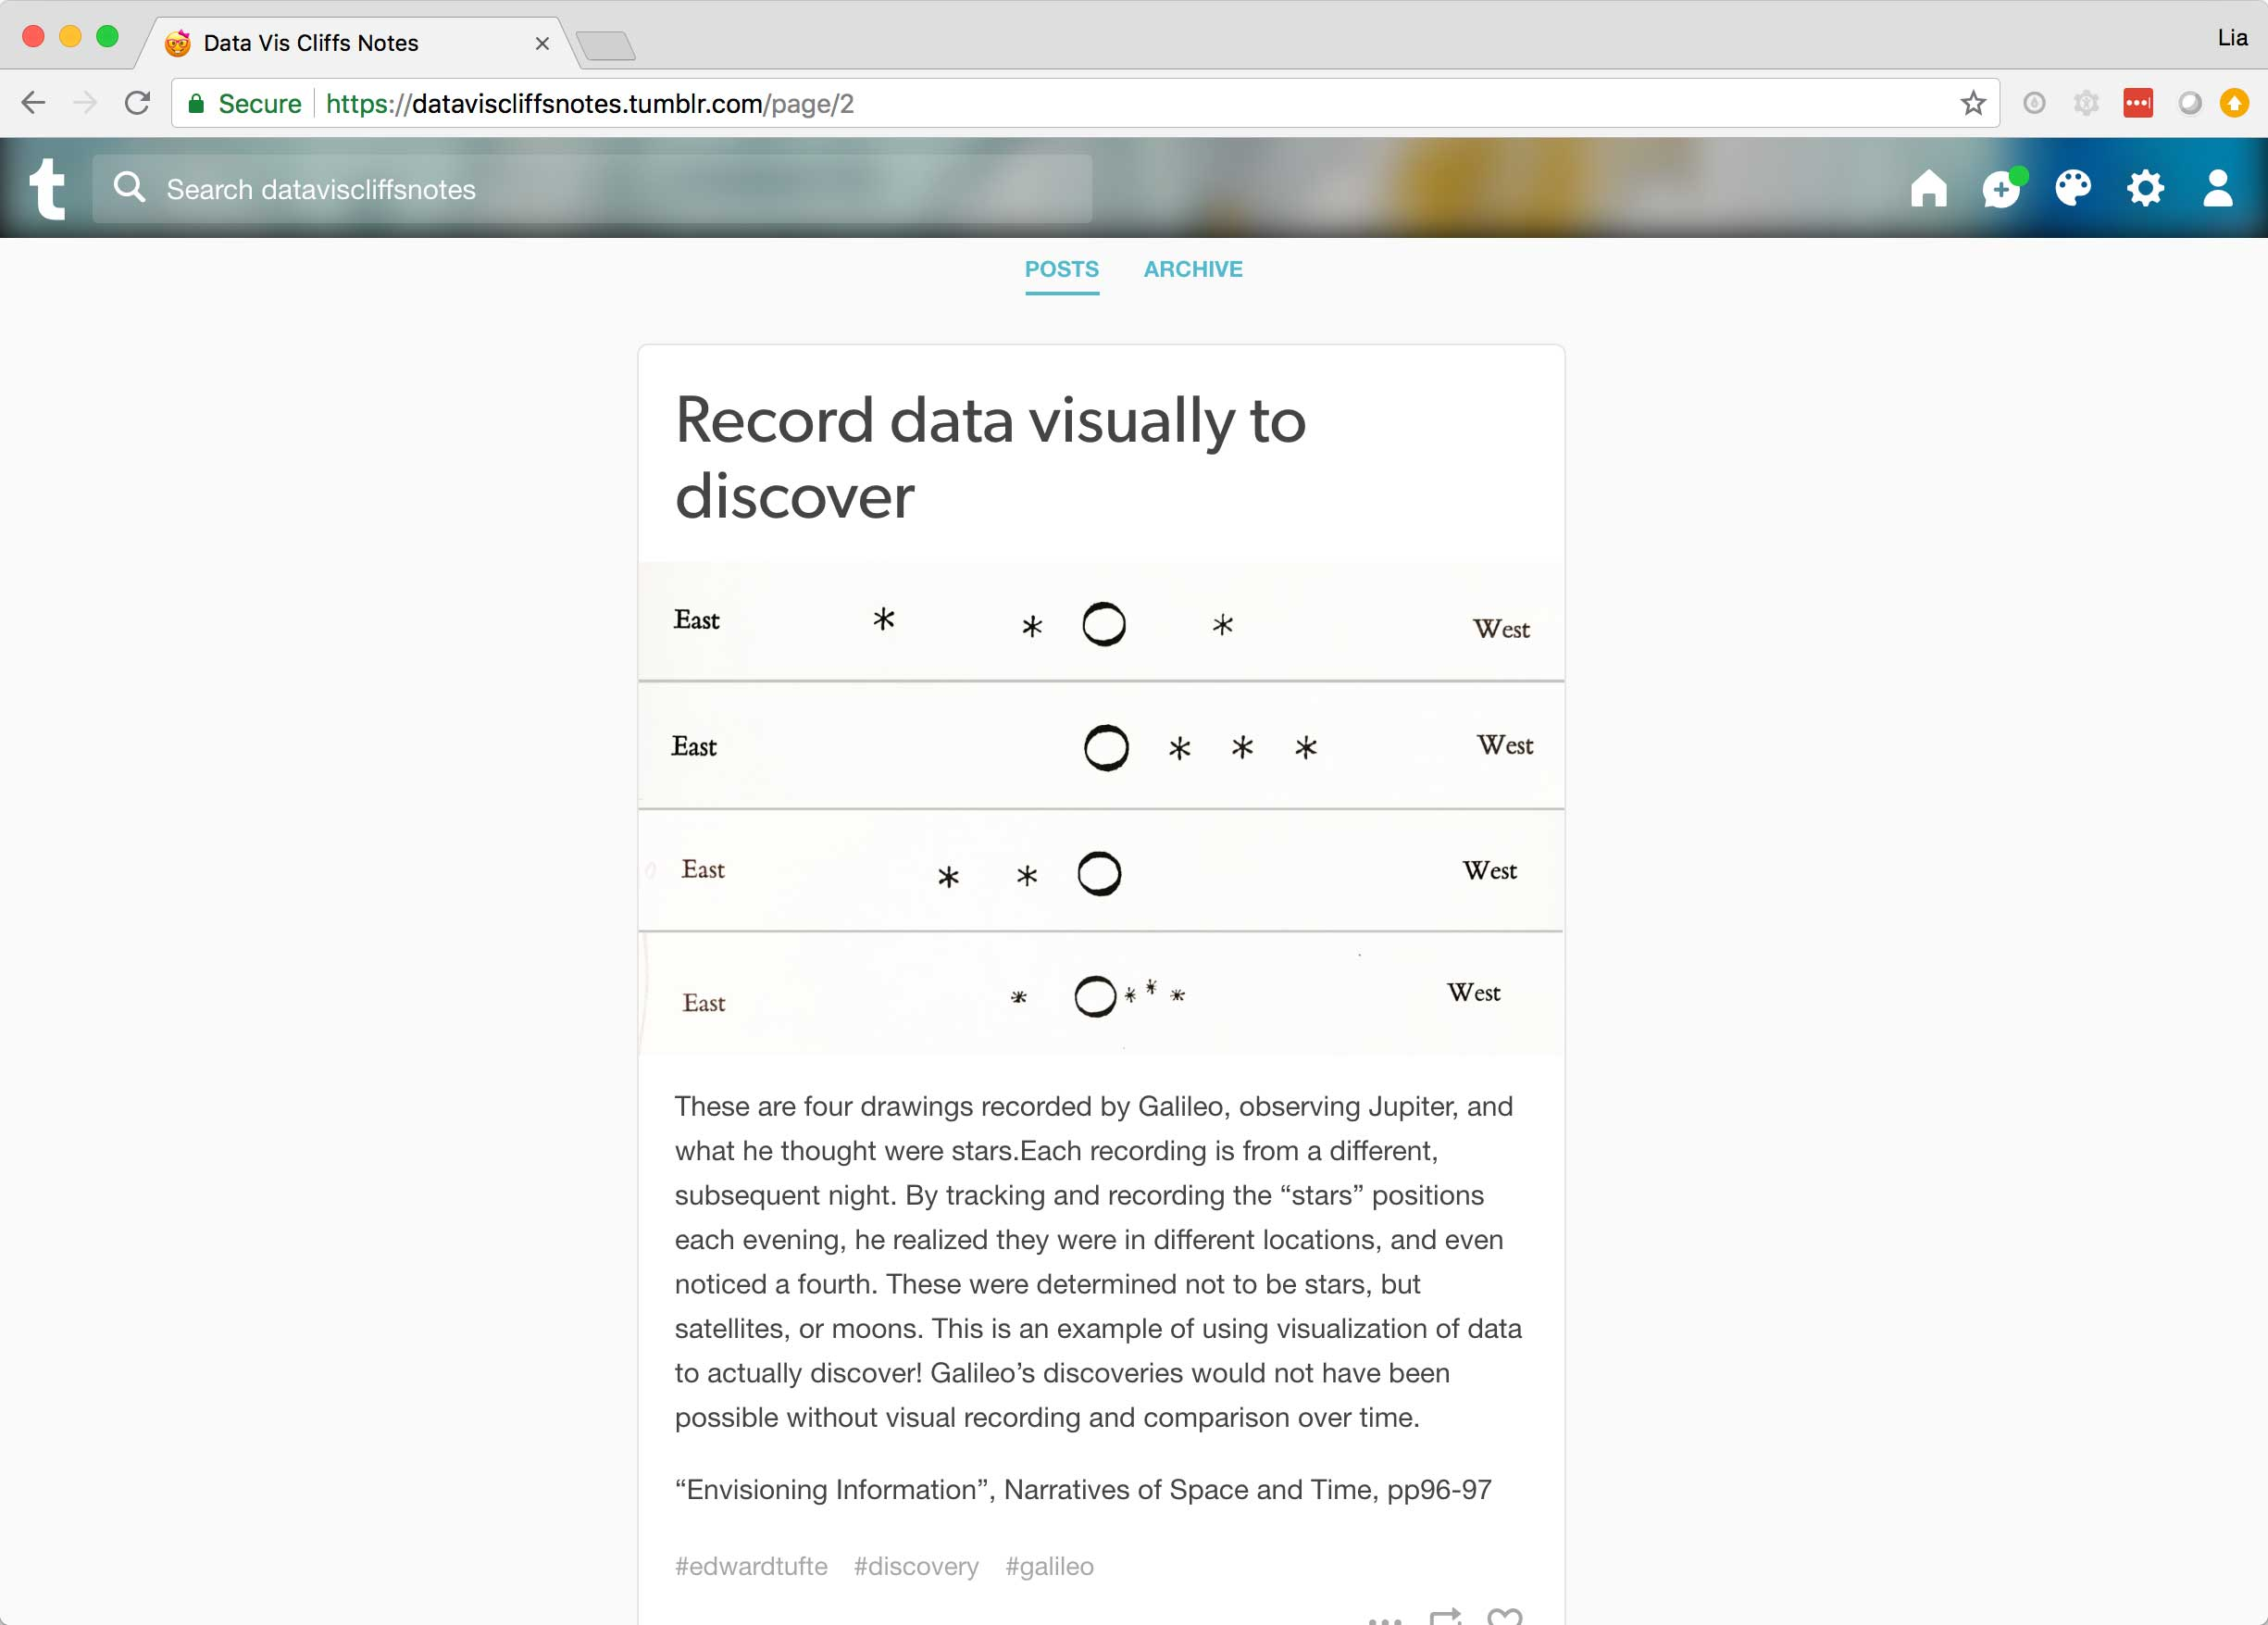 An example post about the ability to discover new scientific concepts via records.